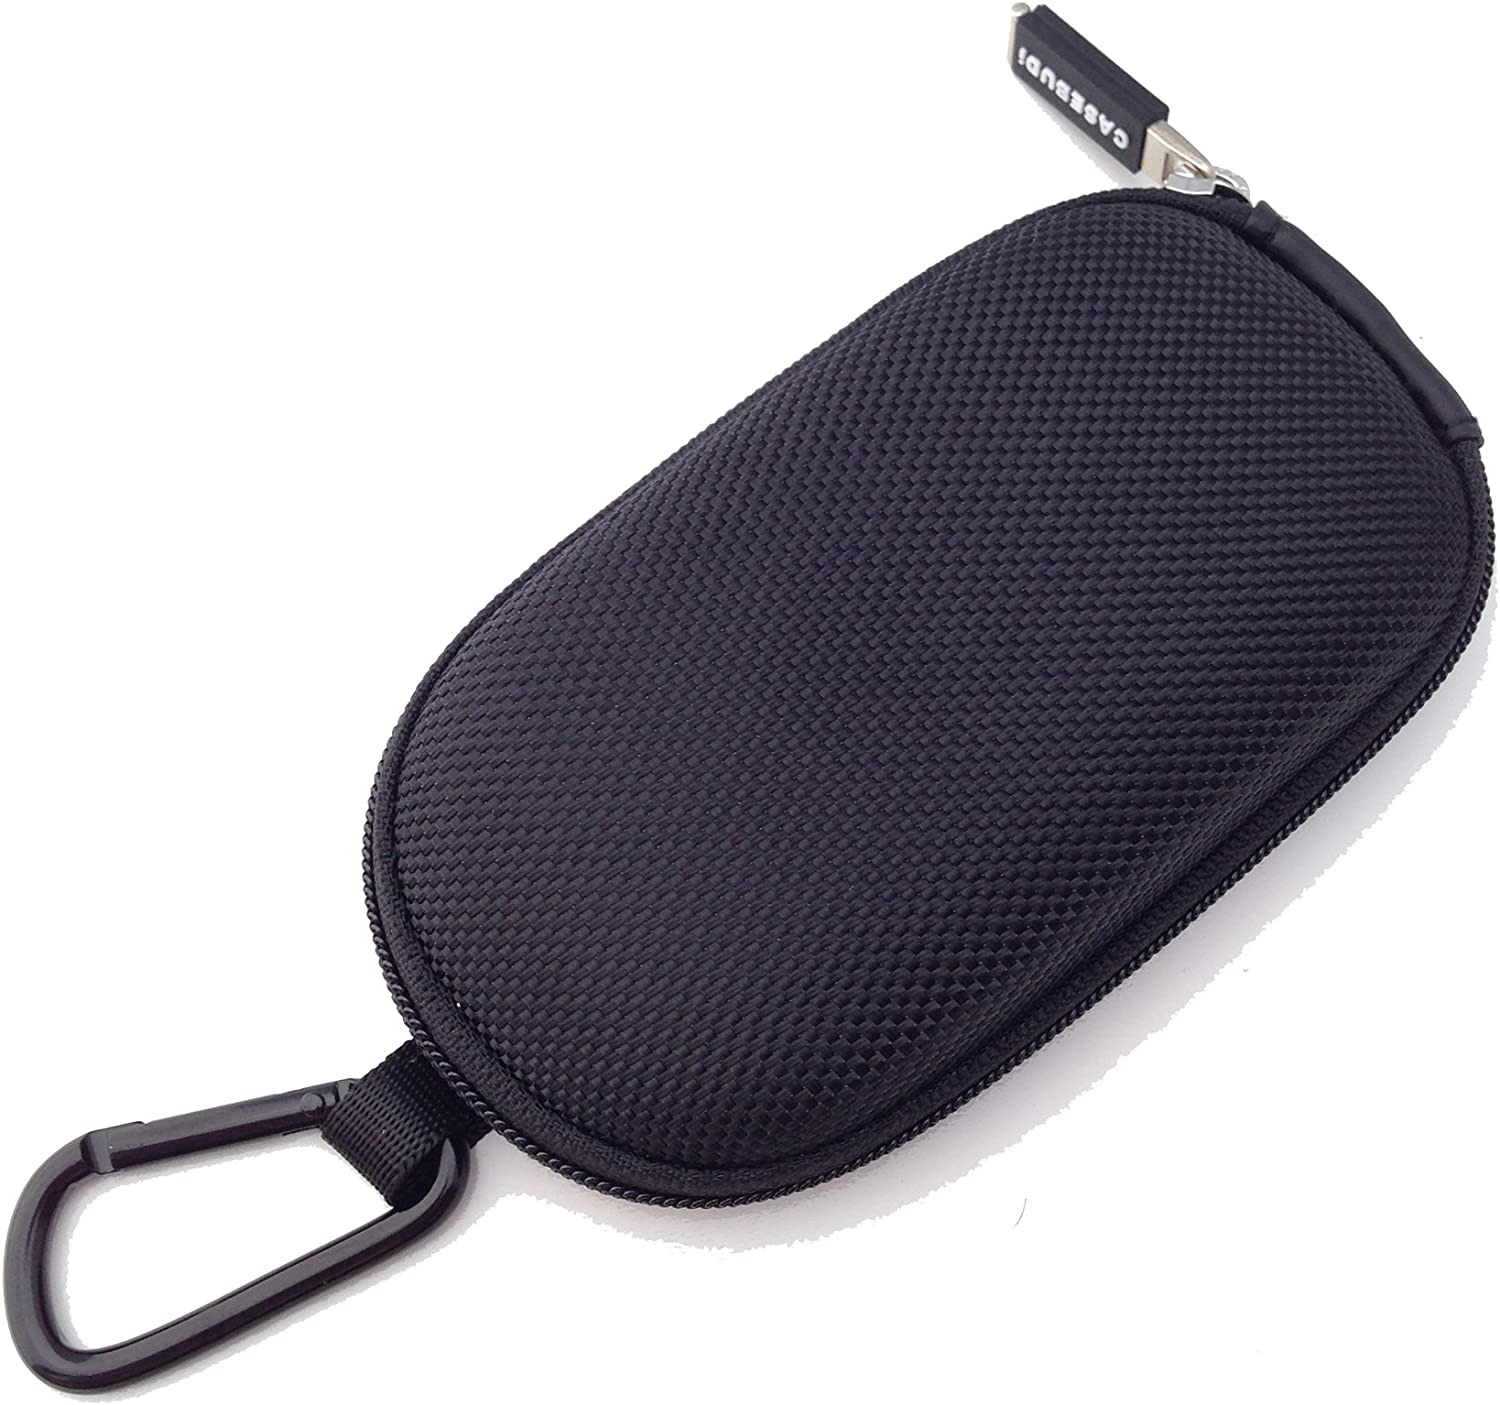 CASEBUDi Tough Travel Carrying Case for Apple Magic Mouse 1 and 2 | Hard Shell Ballistic Nylon (Black)